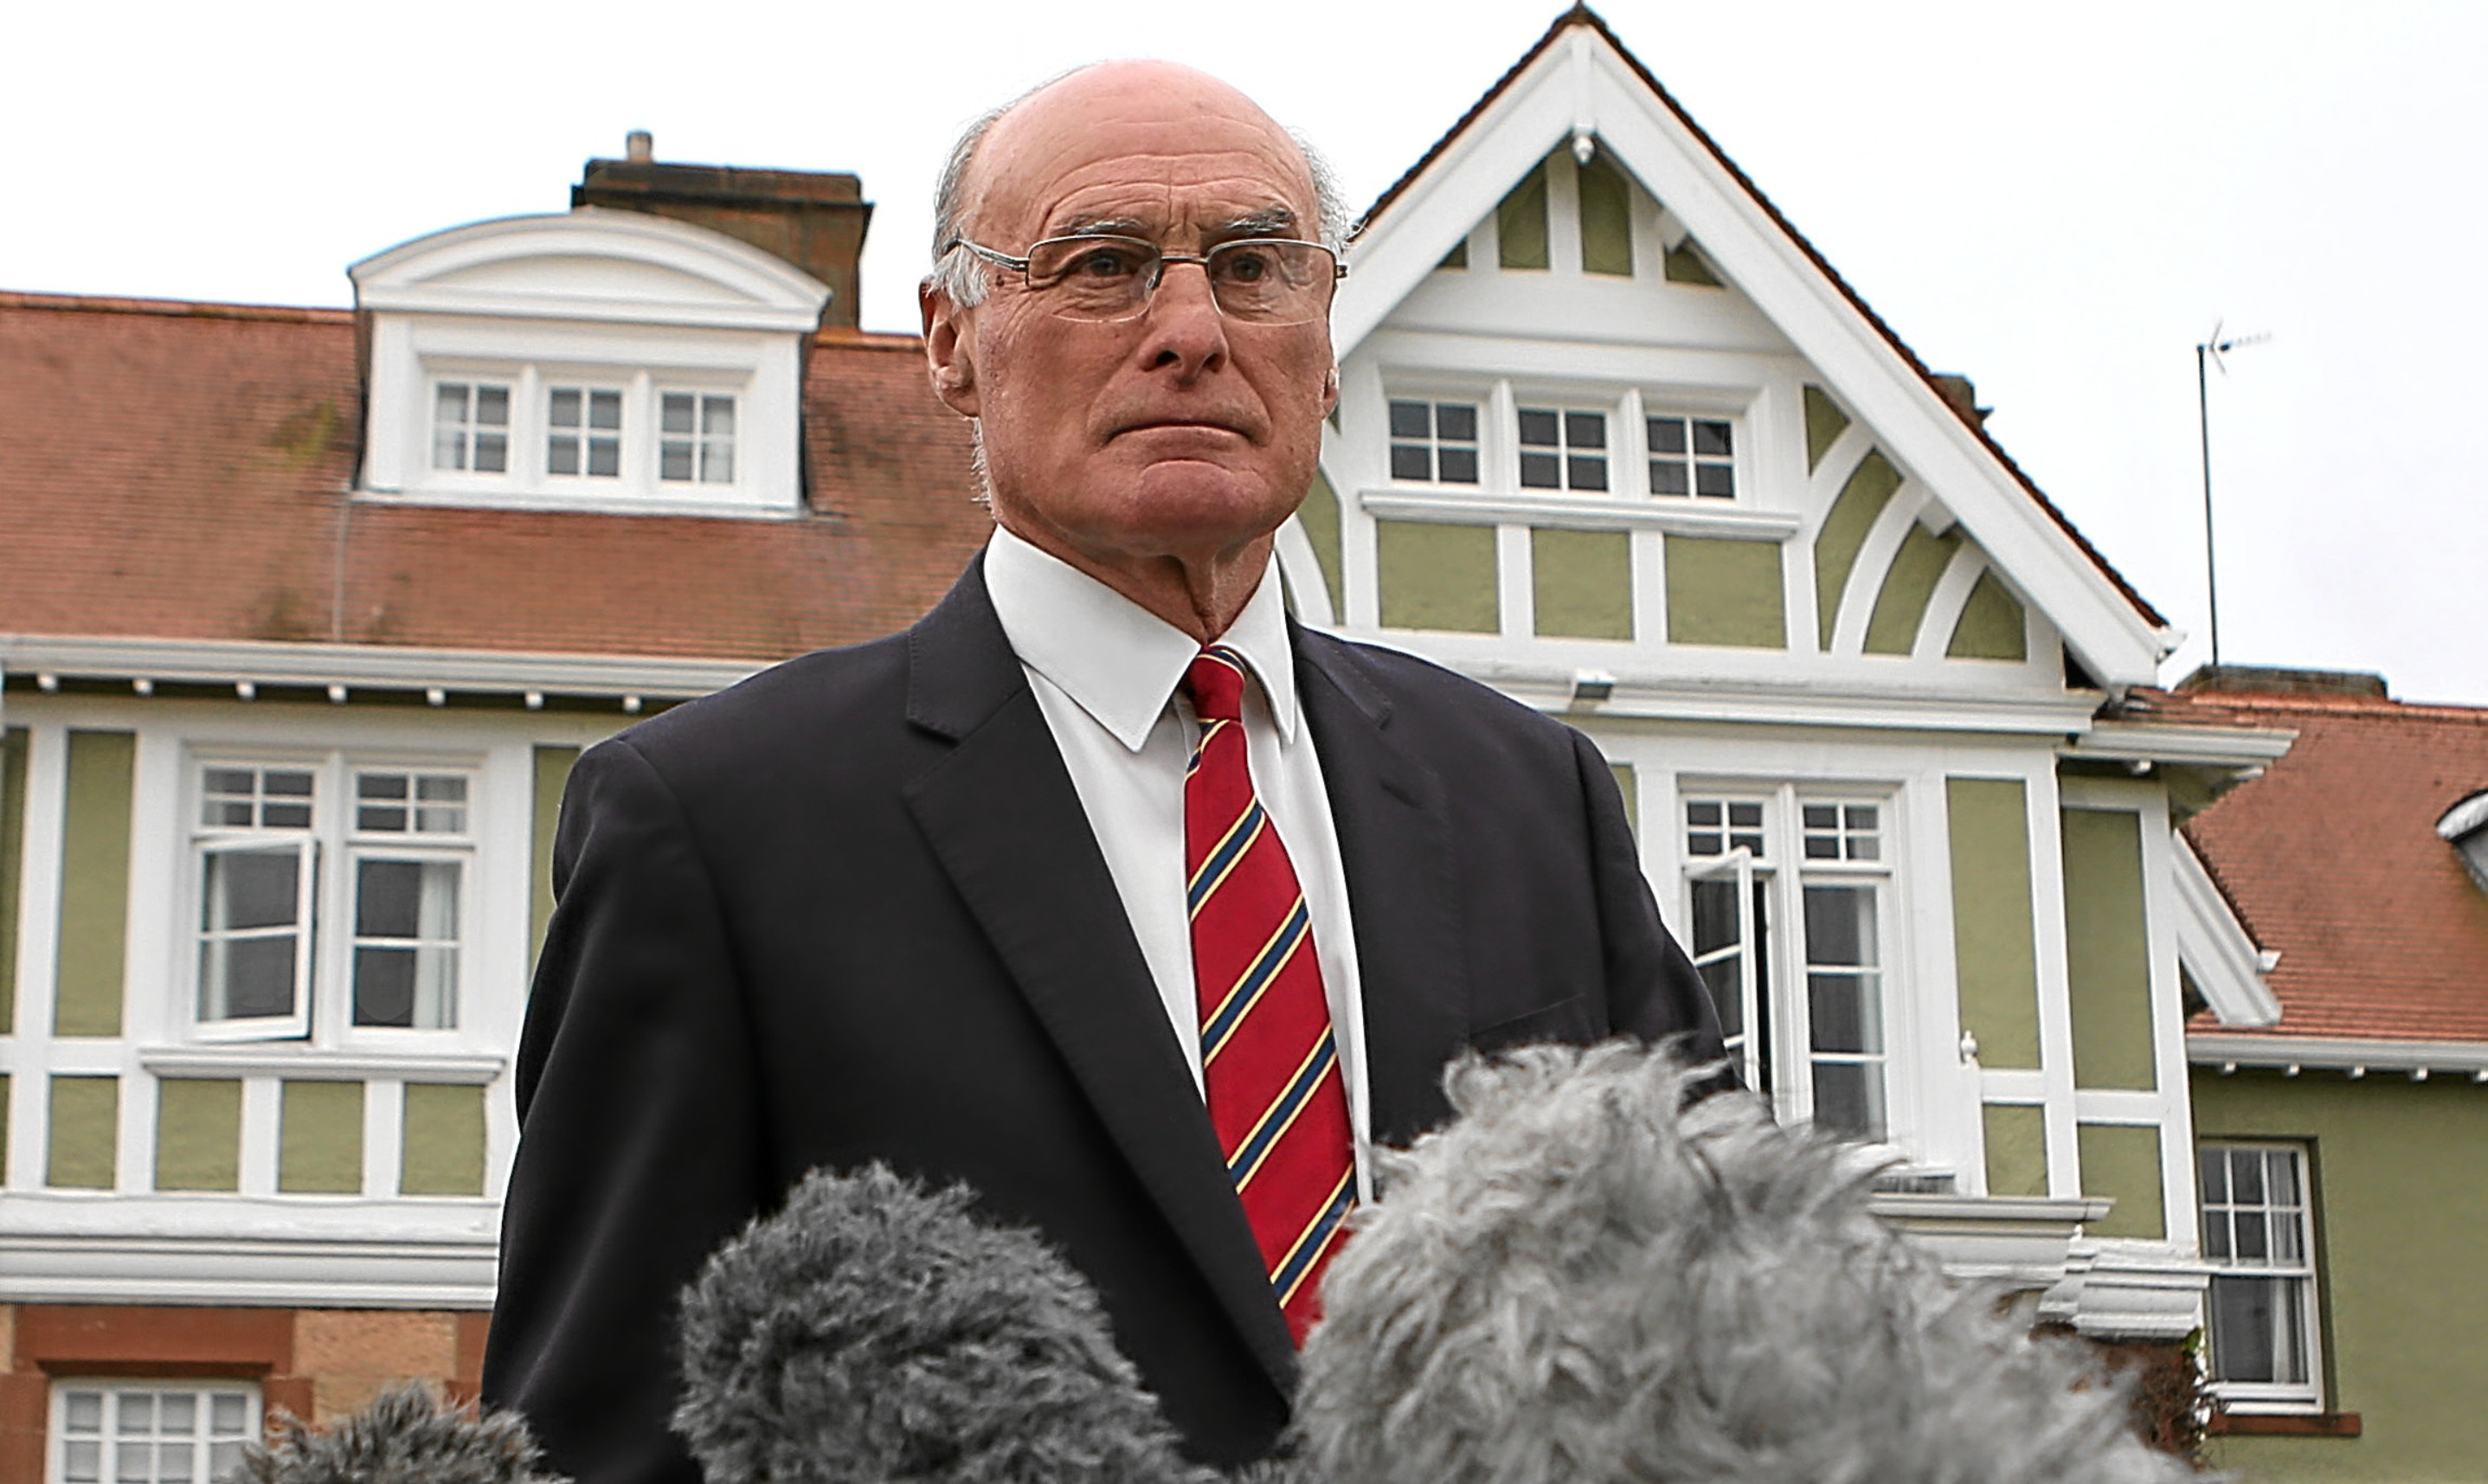 Captain of Muirfield Golf Club, Henry Fairweather announces the outcome of the ballot on the admission of women. Picture: PA.